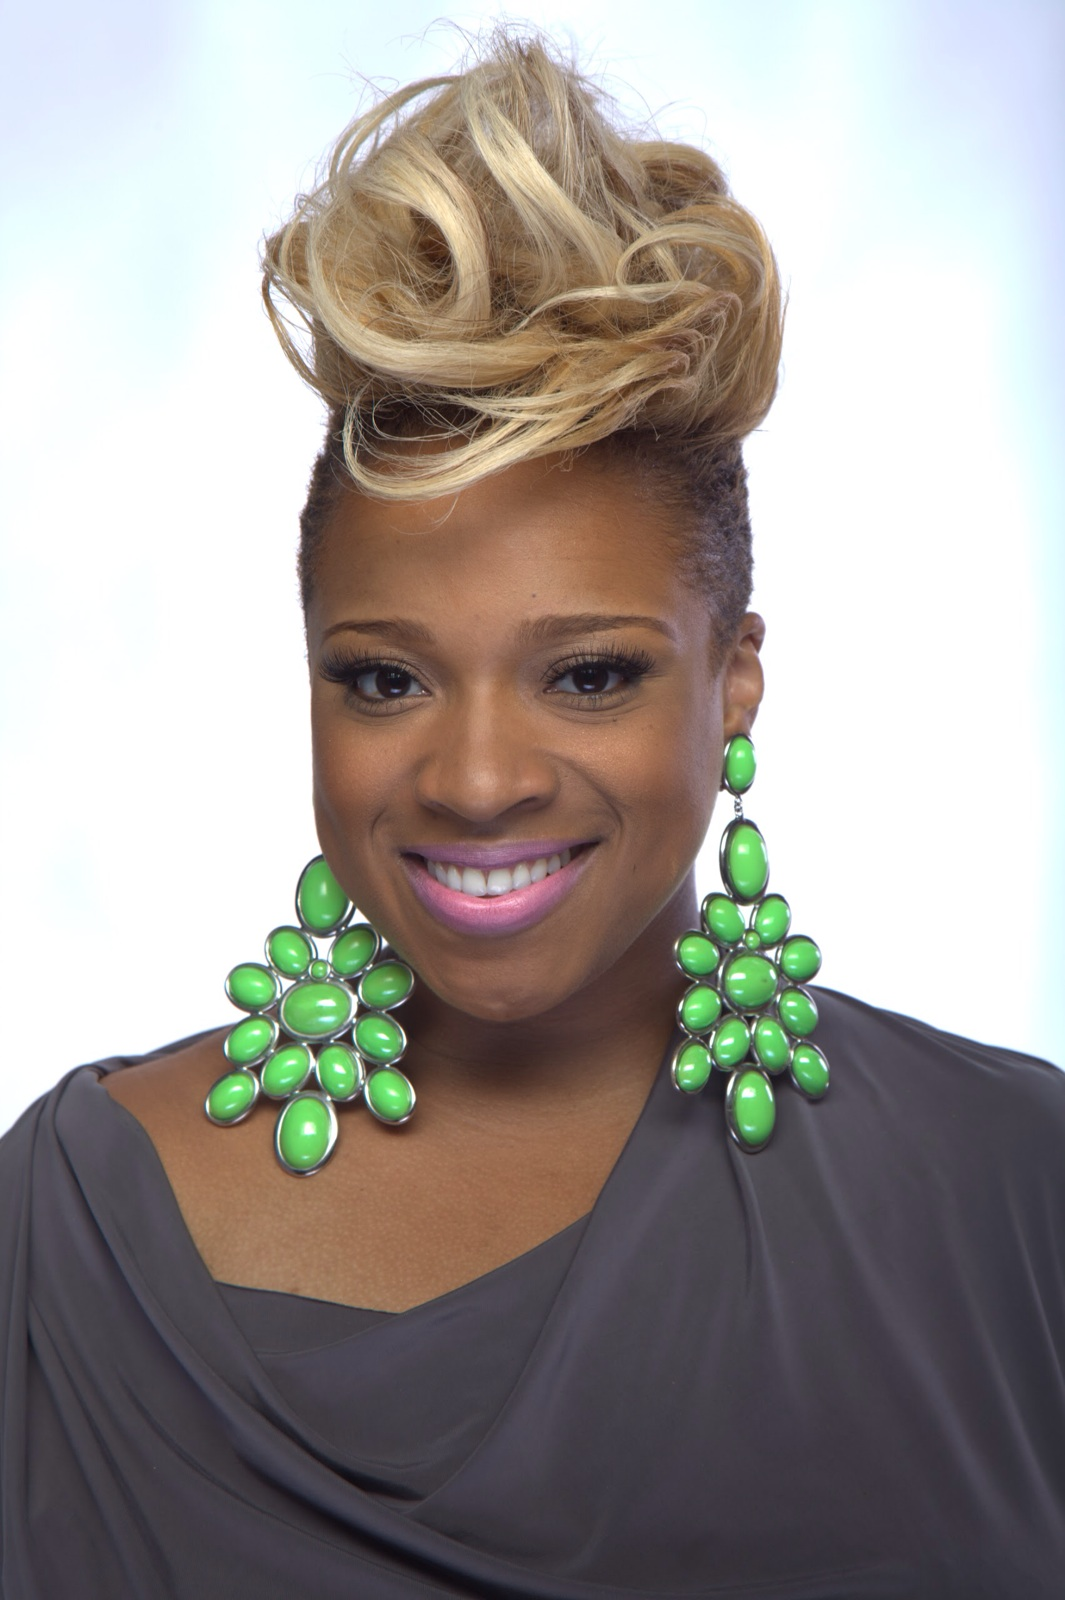 Kierra Sheard Net Worth